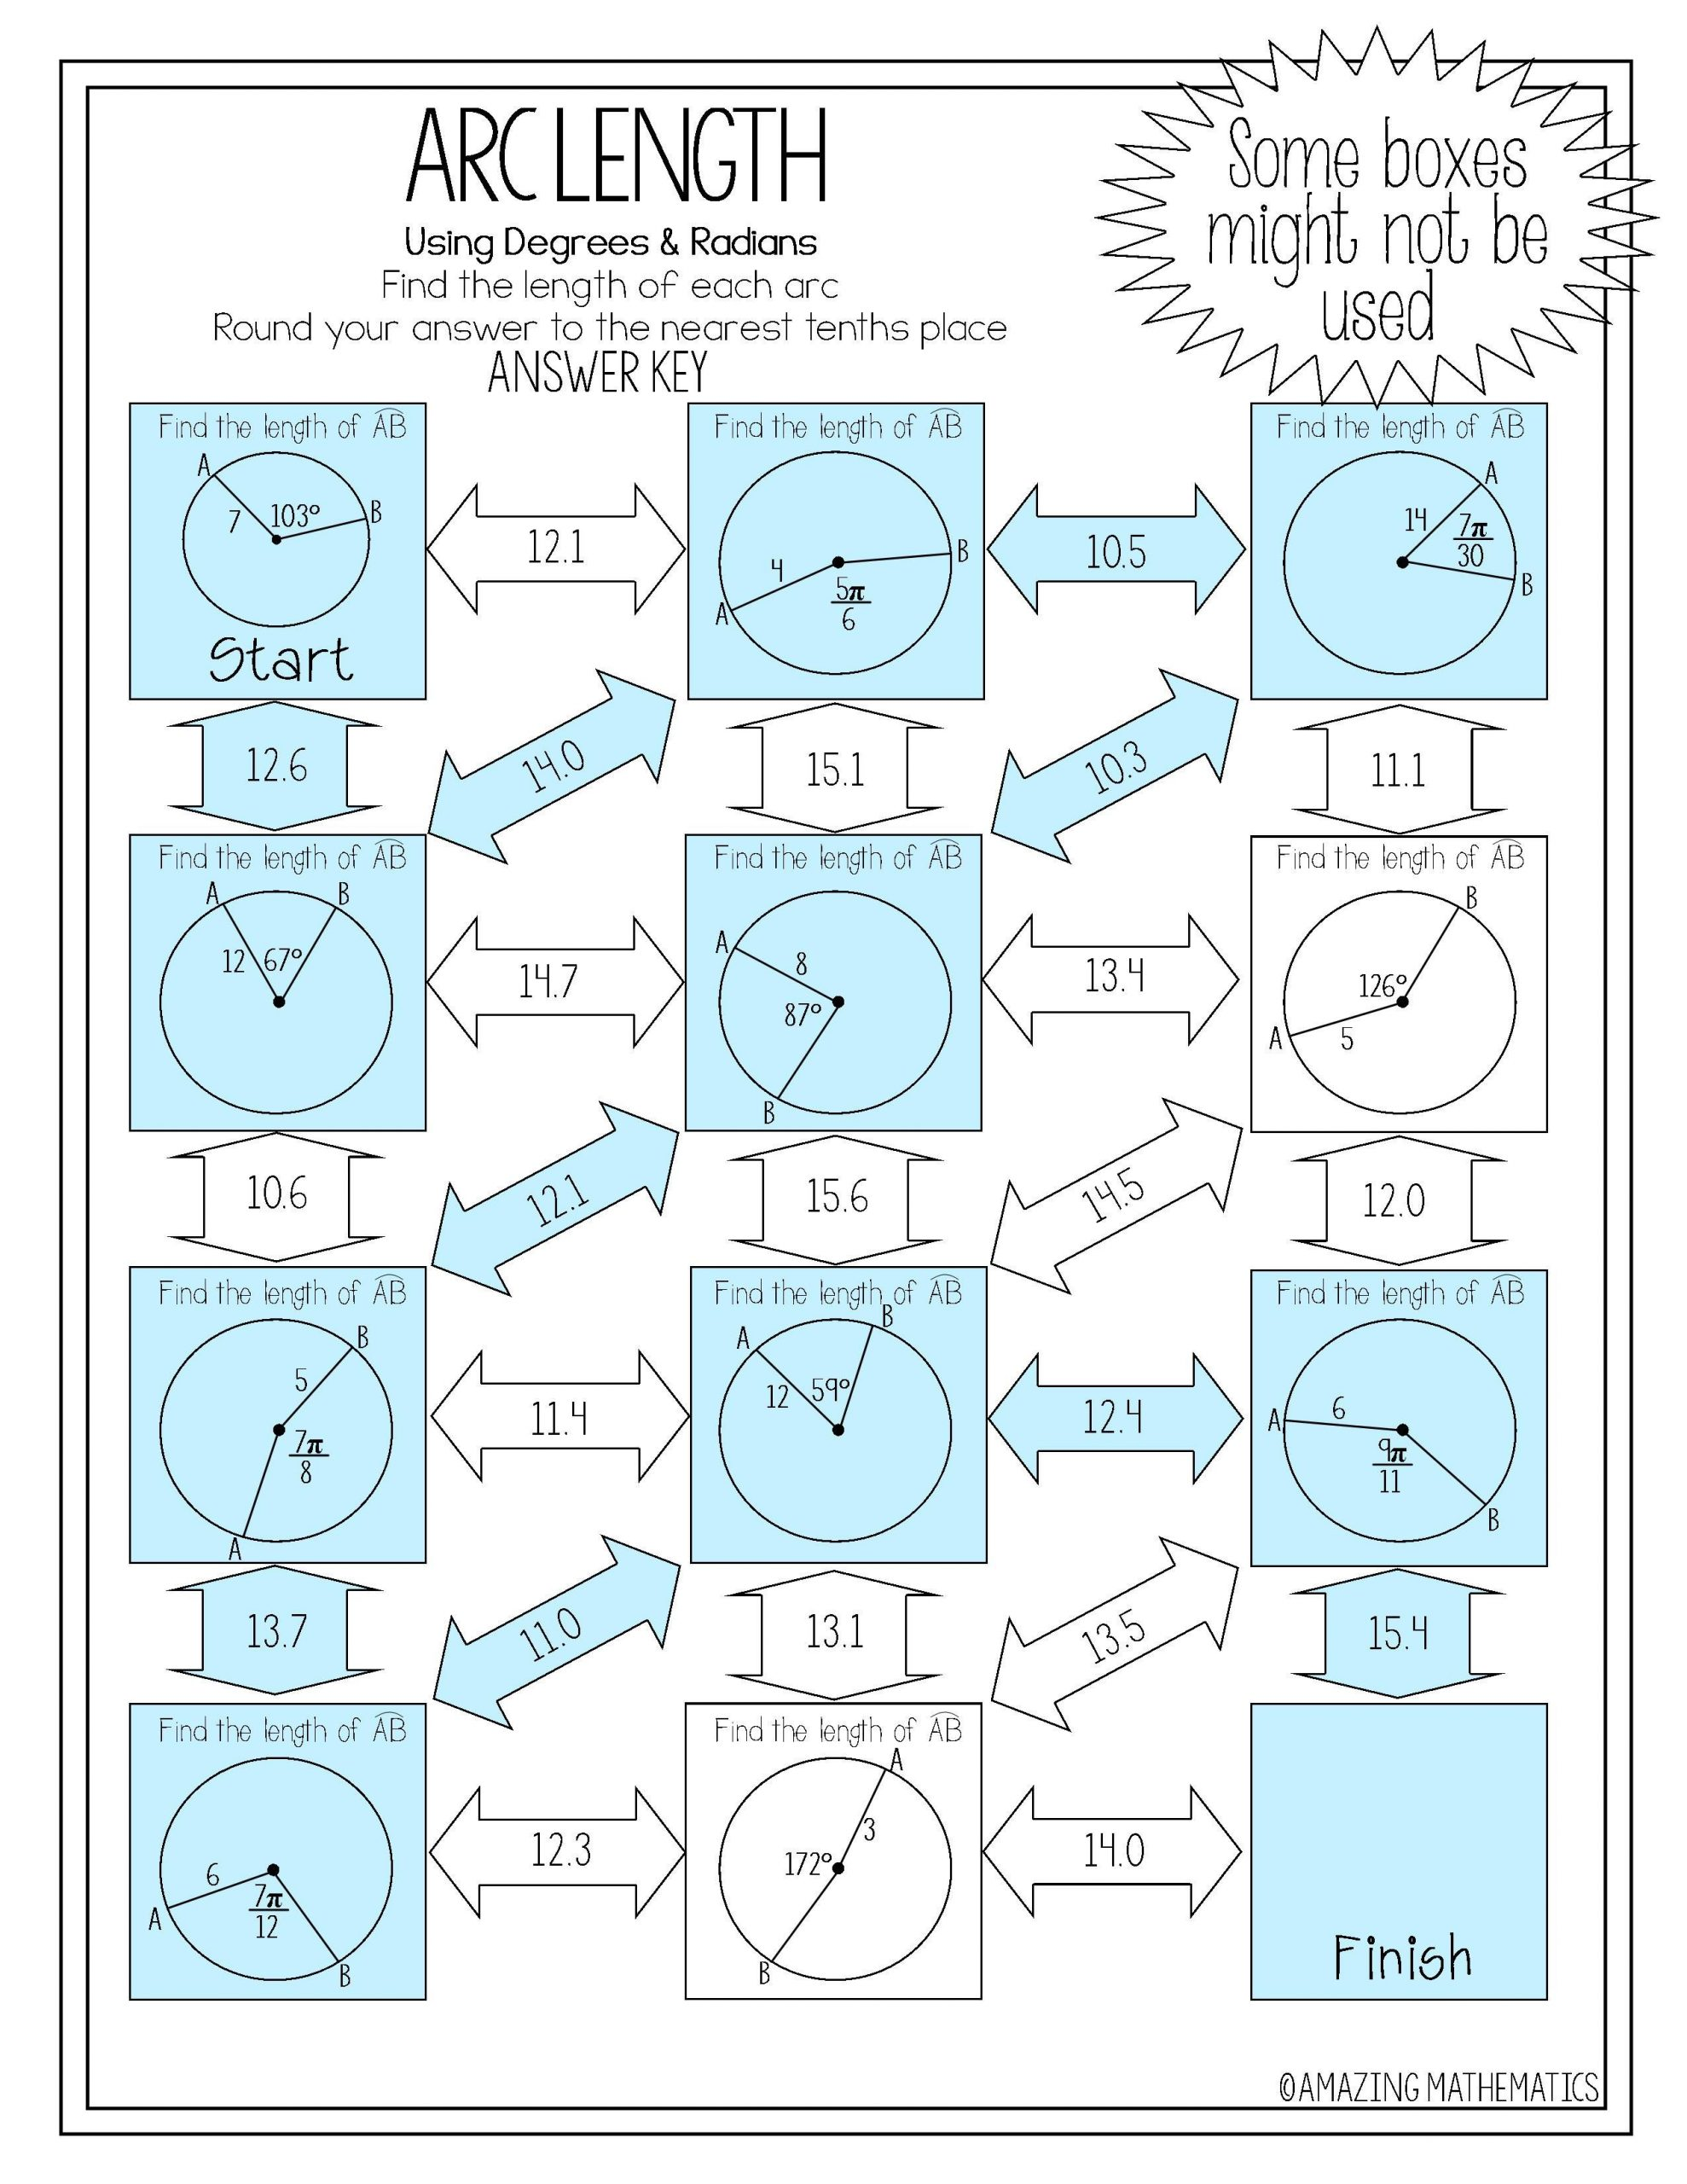 Radians to Degrees Worksheet Arc Length Maze Degrees & Radians with Images